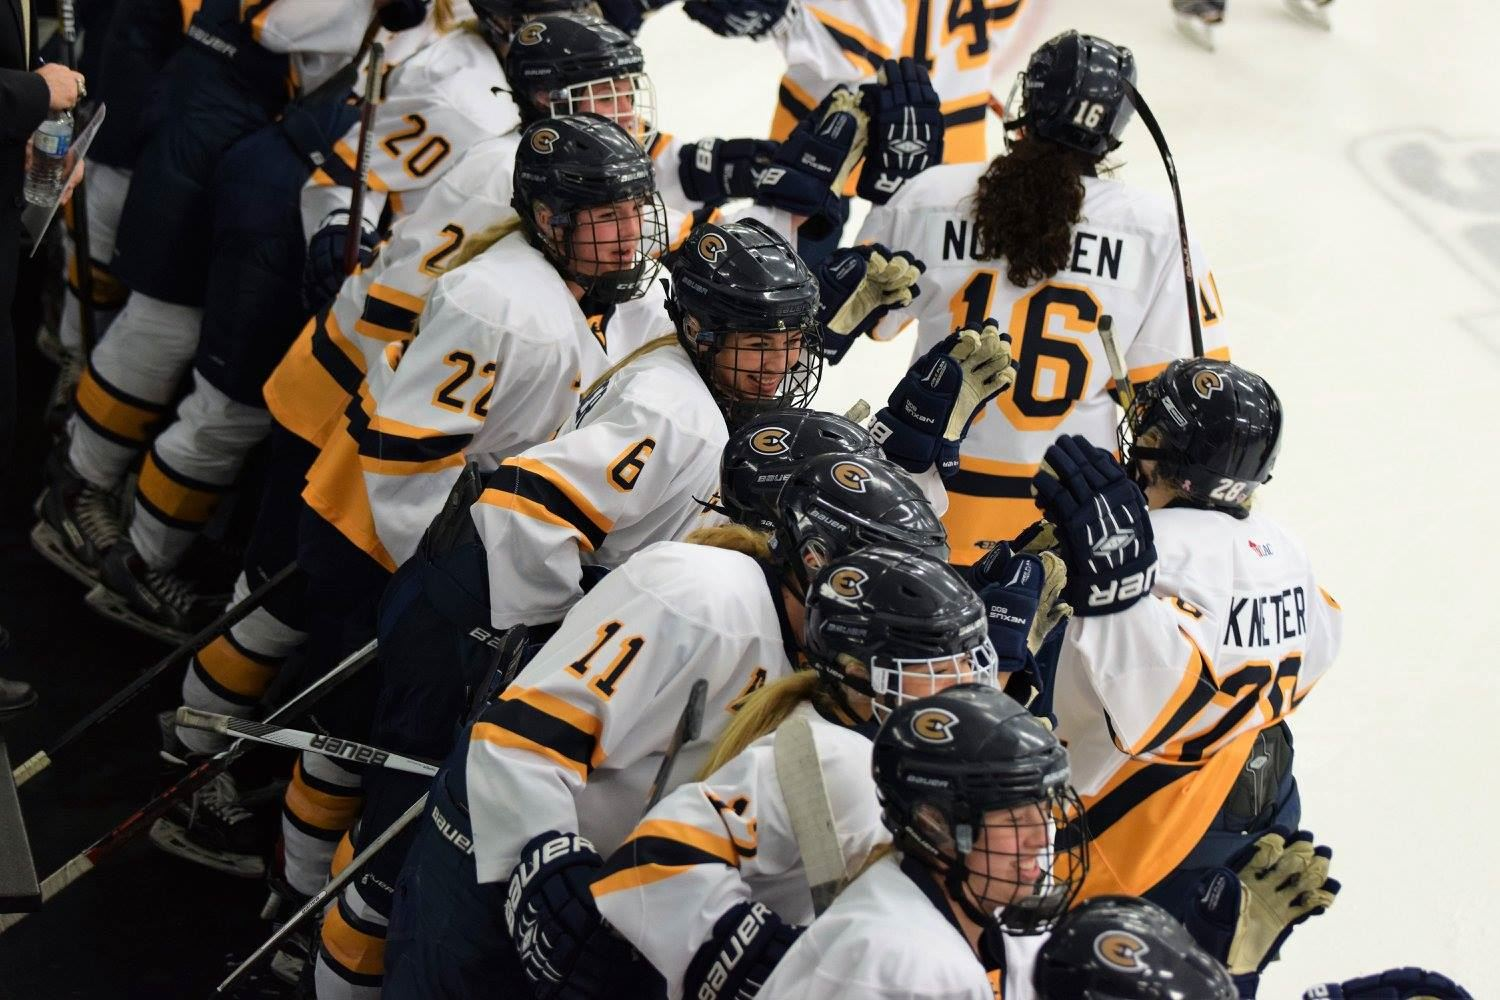 University of Wisconsin - Eau Claire - Women's Hockey